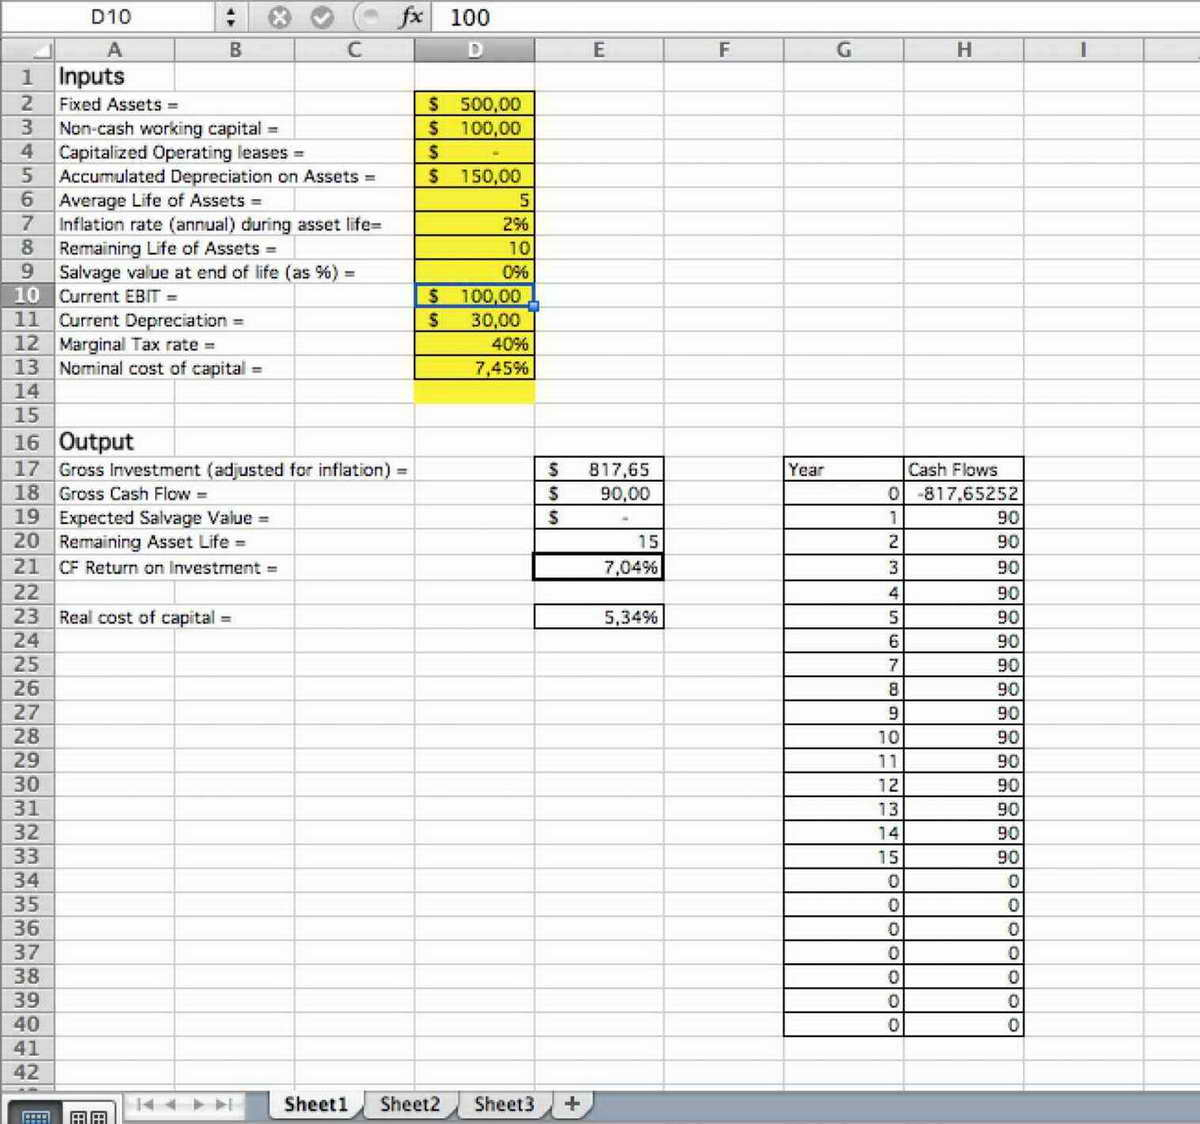 Restaurant Valuation Spreadsheet With Regard To Business Valuation Spreadsheet With Discounted Cash Flow Template